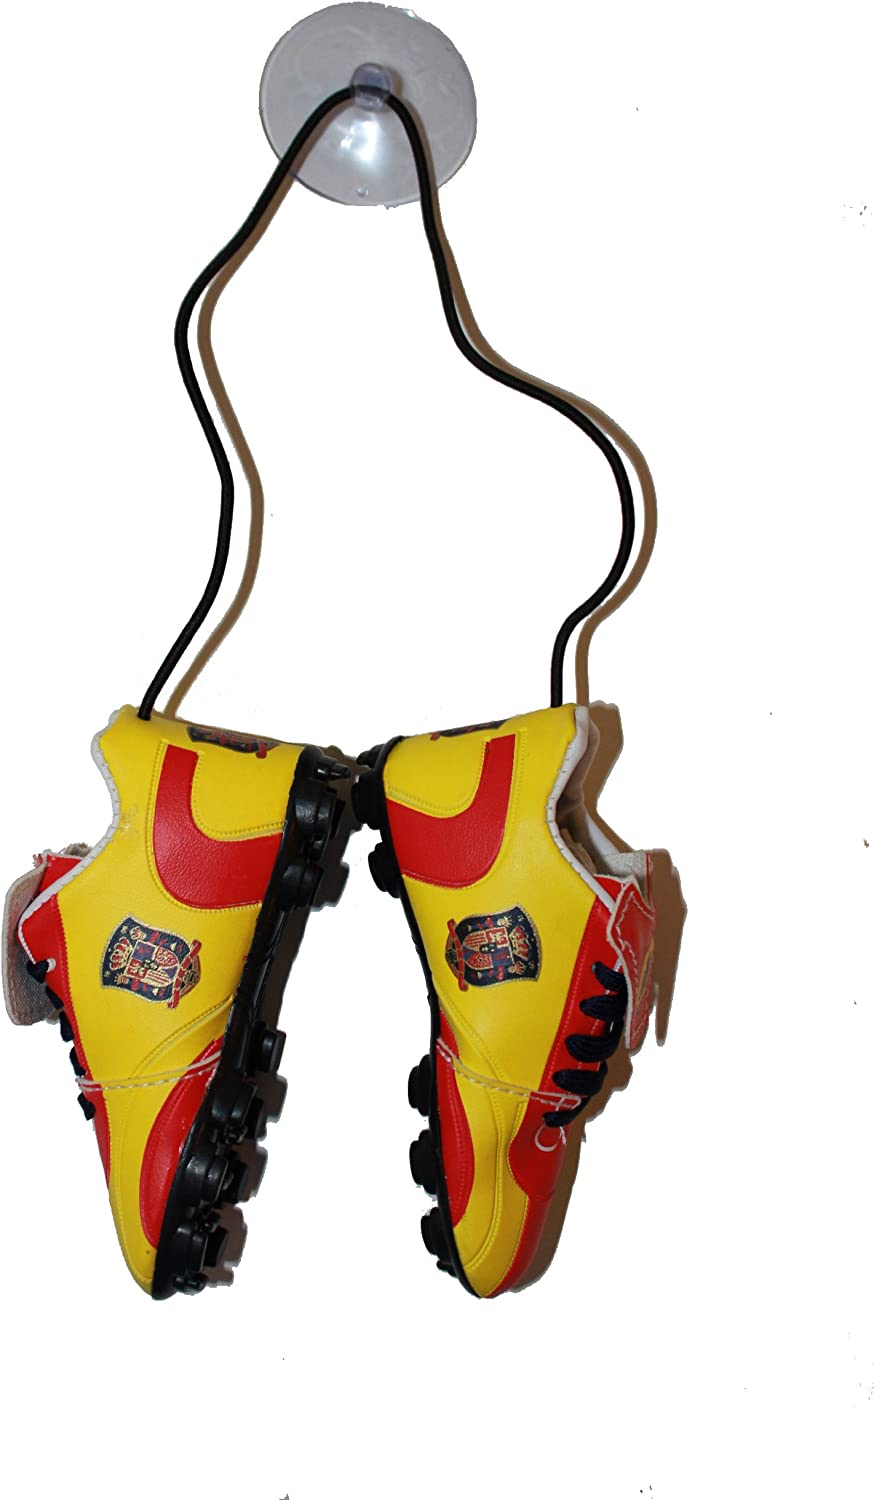 Spain Espana FIFA Soccer World Cup Hanging Shoes Cleat With Suction Cup . High Quality . New 12 x 5 Cm .